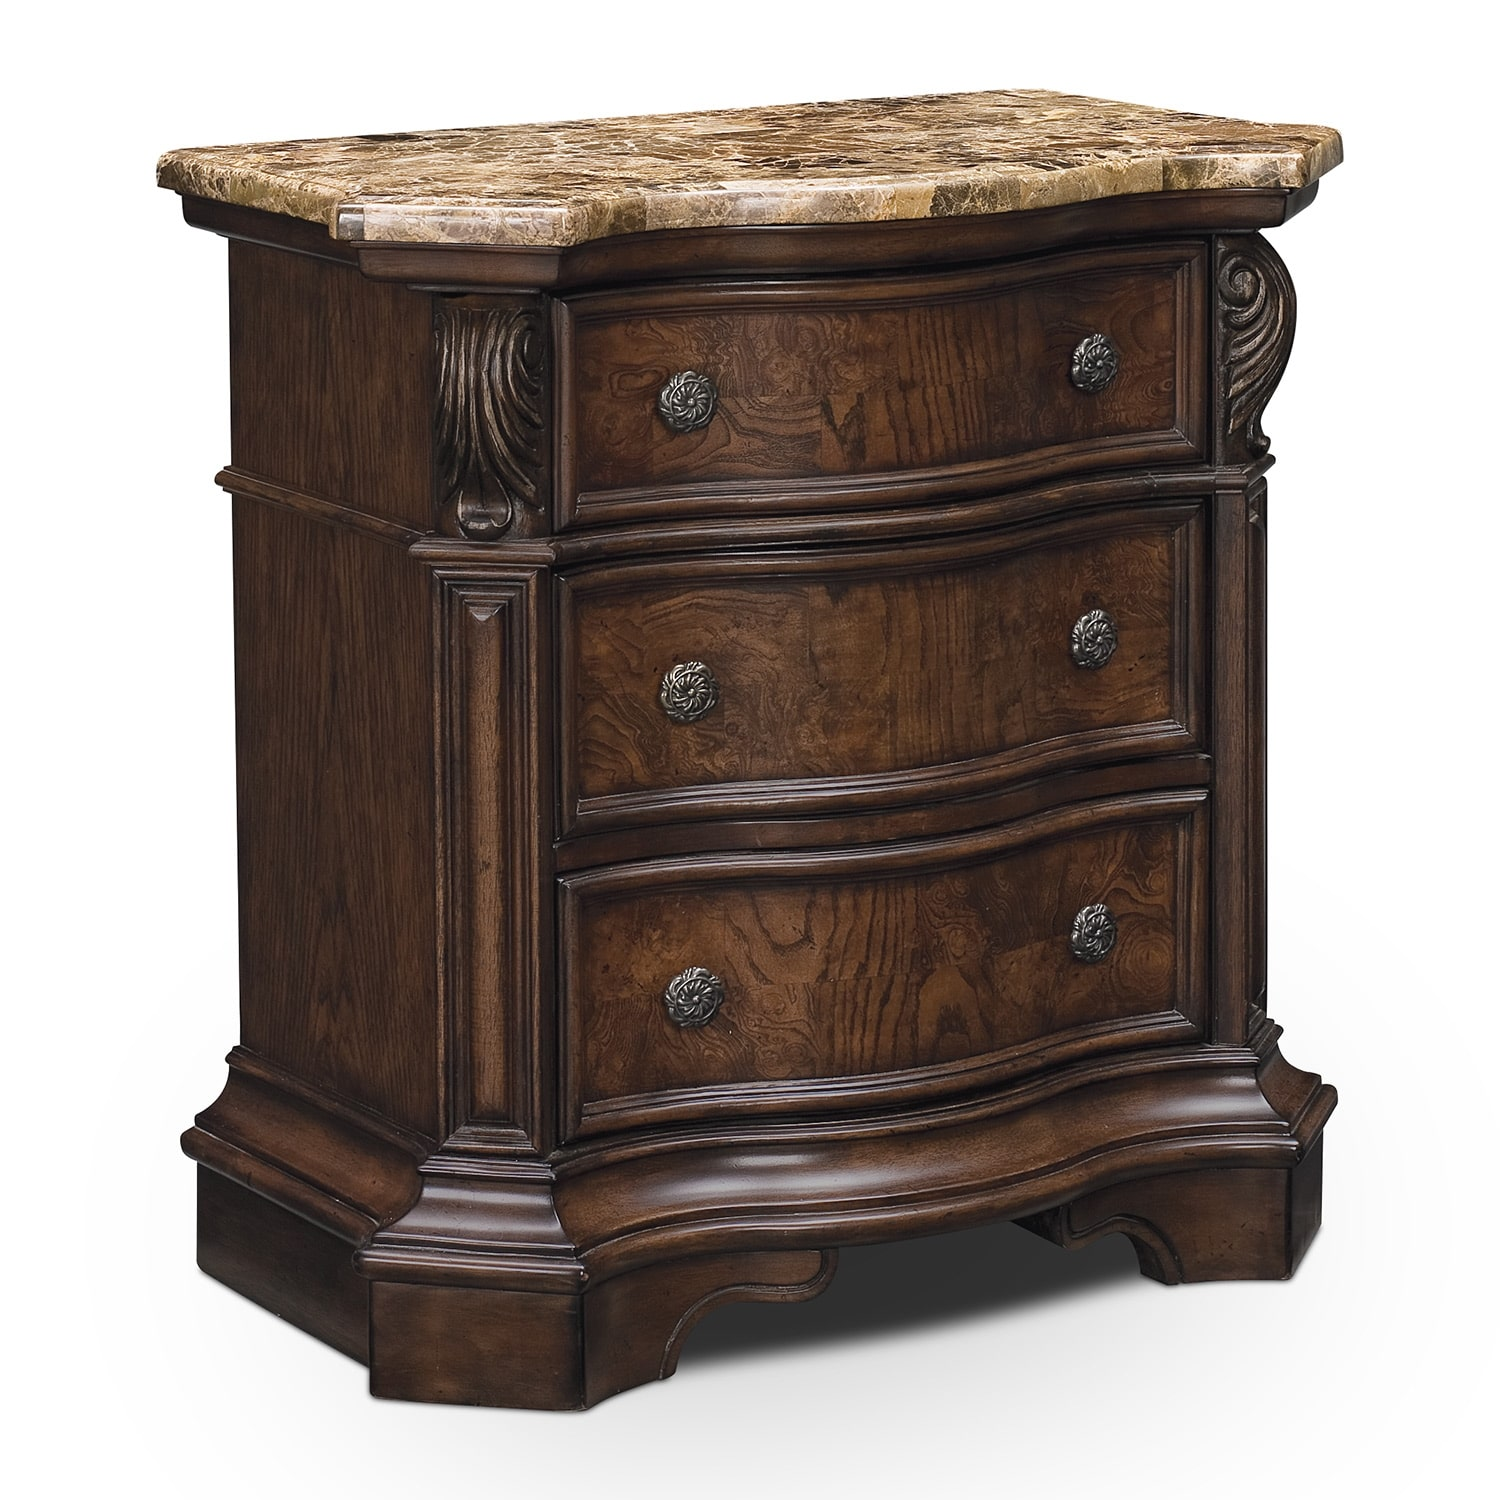 Bedroom Furniture - Monticello Nightstand - Pecan